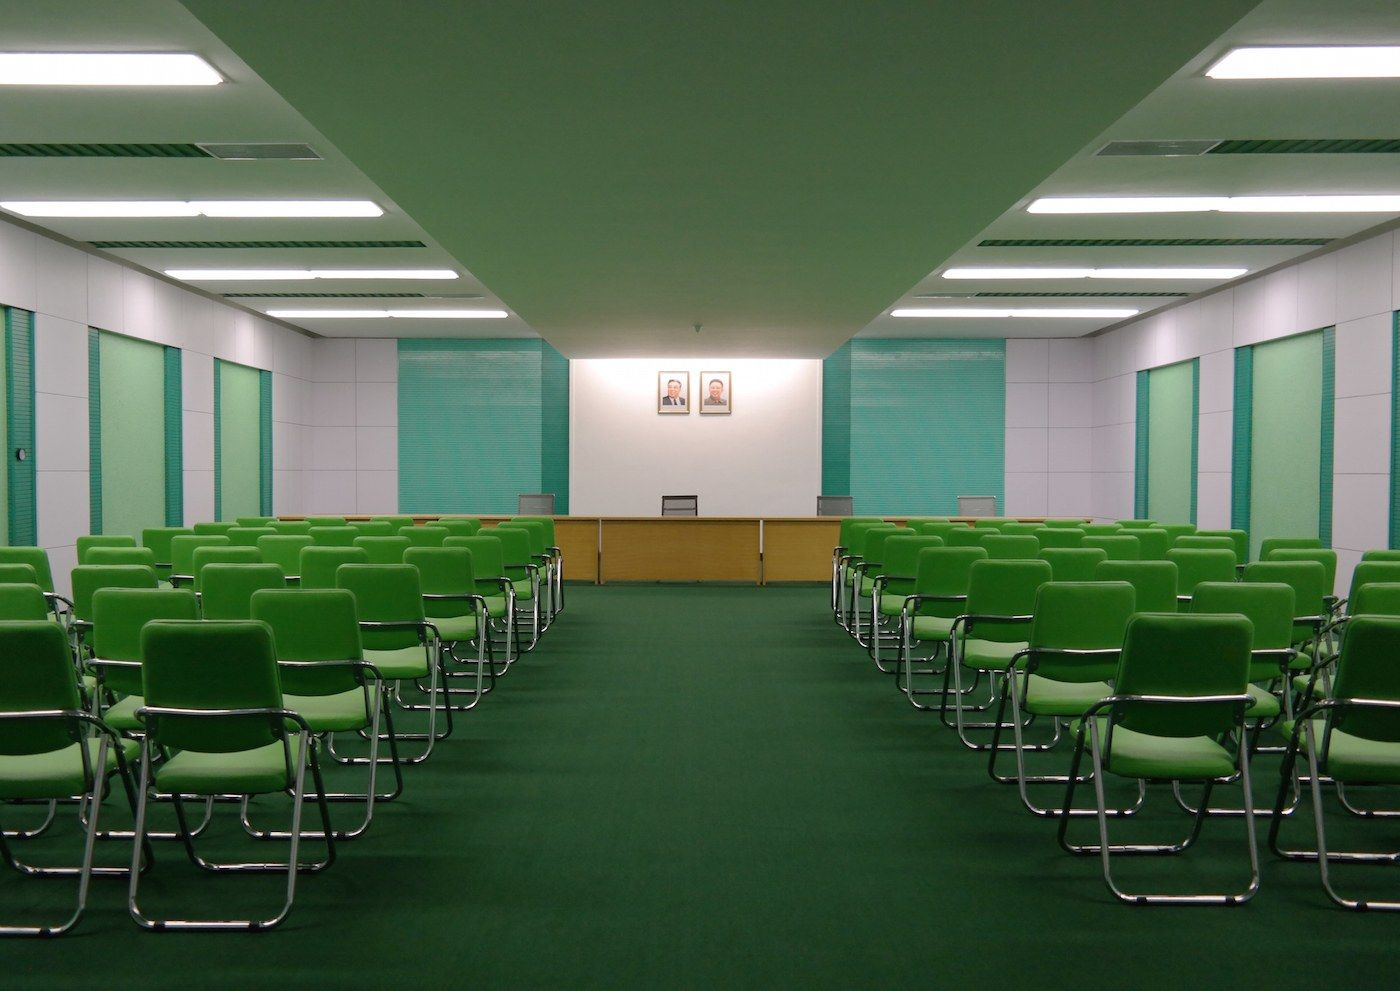 Oliver Wainwright photographed the mint, apricot and lavender that dominates Pyongyang's architecture.